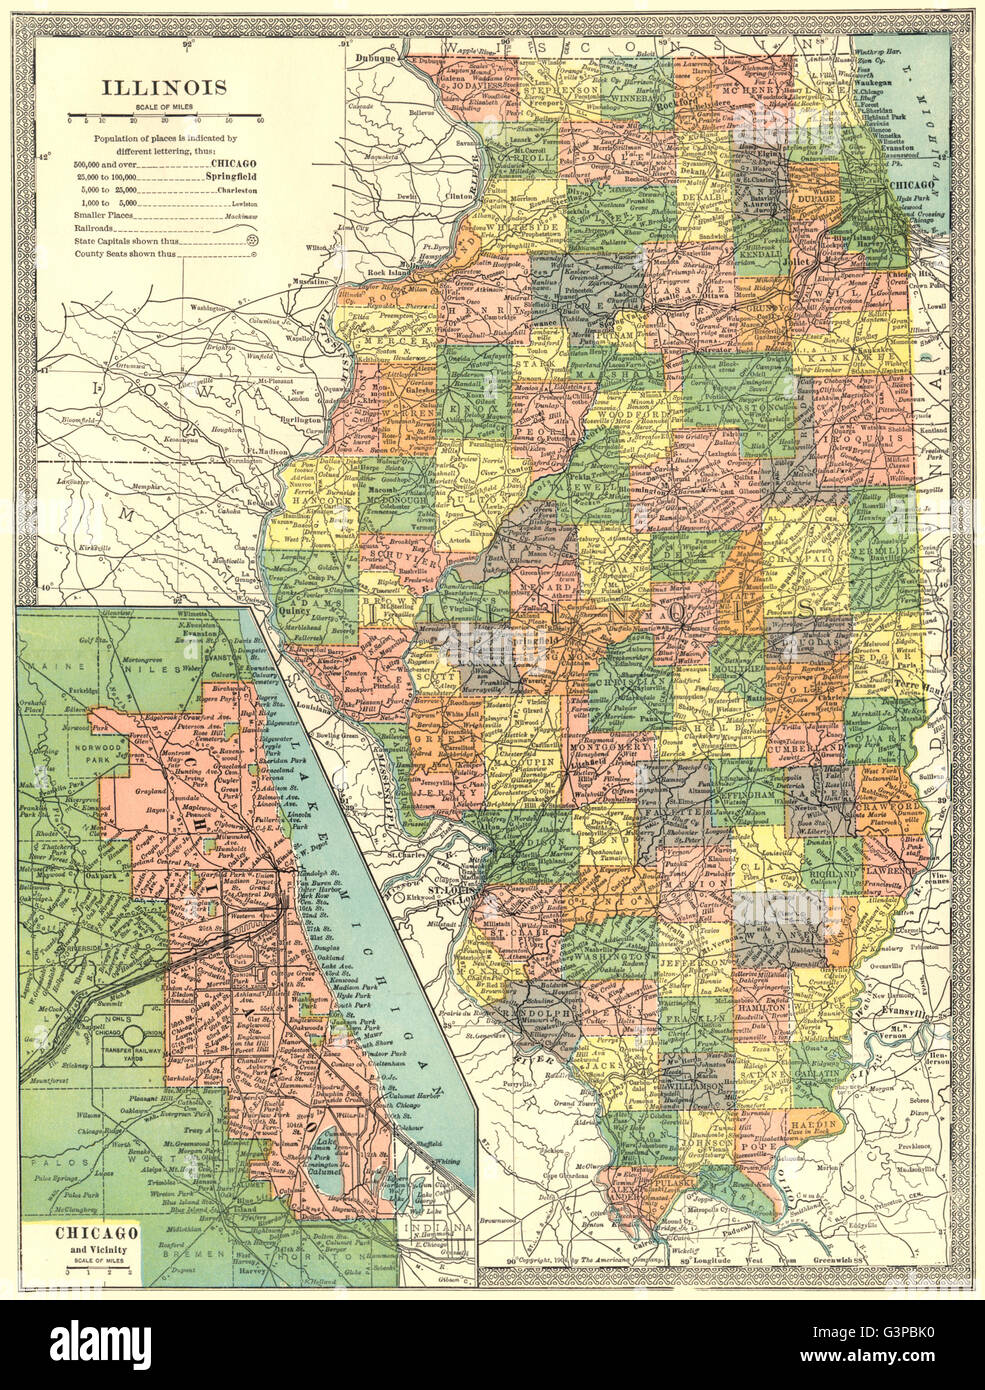 ILLINOIS state map. Counties. CHICAGO & environs, 1907 Stock ... on illinois state flag, illinois union map, illinois state city map, north dakota capital map, illinois state highway map, illinois state land map, illinois state motto, illinois largest cities map, illinois state map online, illinois state bird, illinois state capitol, georgetown capital map, illinois state project, illinois forest map, illinois deer map, illinois state fairgrounds map, illinois state flower, illinois springfield map, illinois state us map, u.s. capitol complex map,